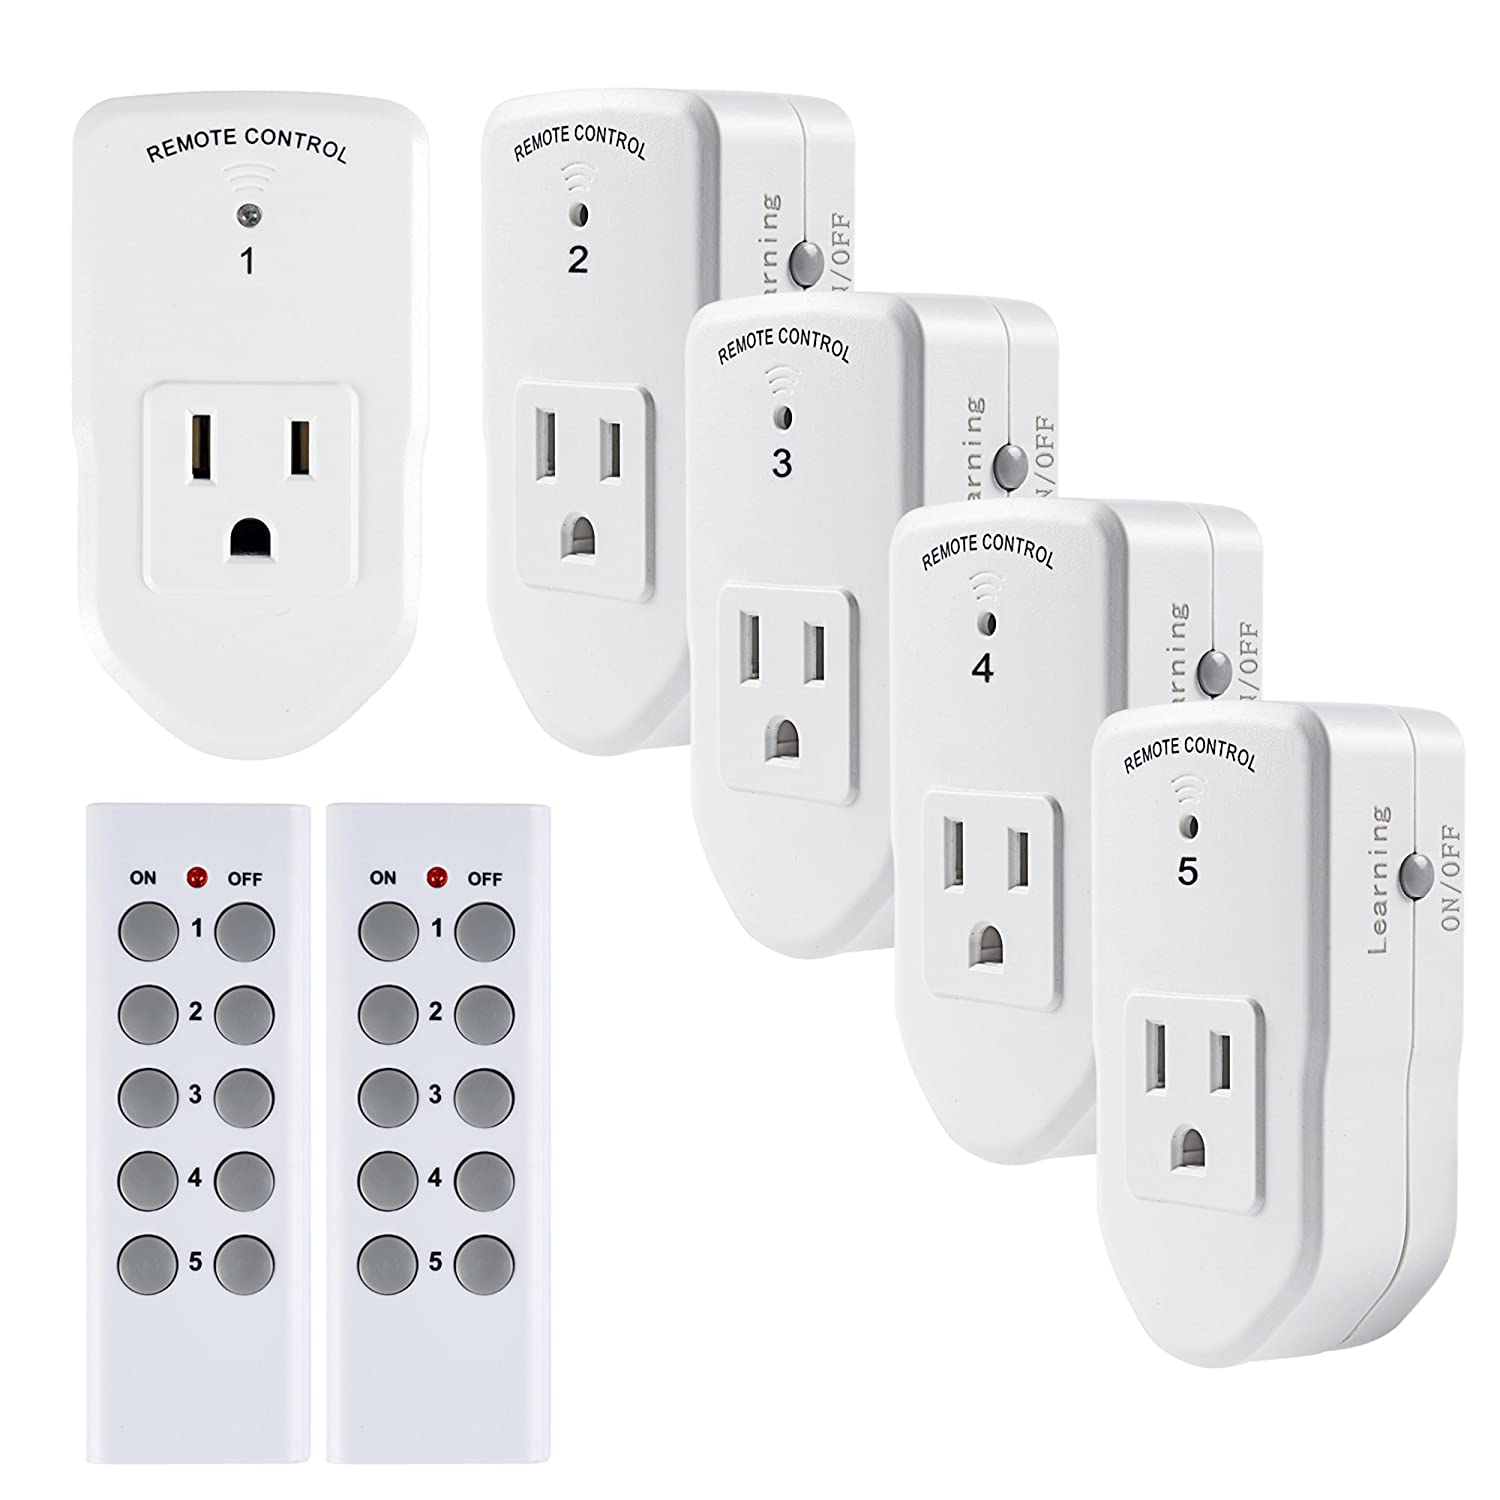 Century Wireless Remote Control Electrical Outlet Switch (5 Outlets 2 Remotes, Indoor, White)